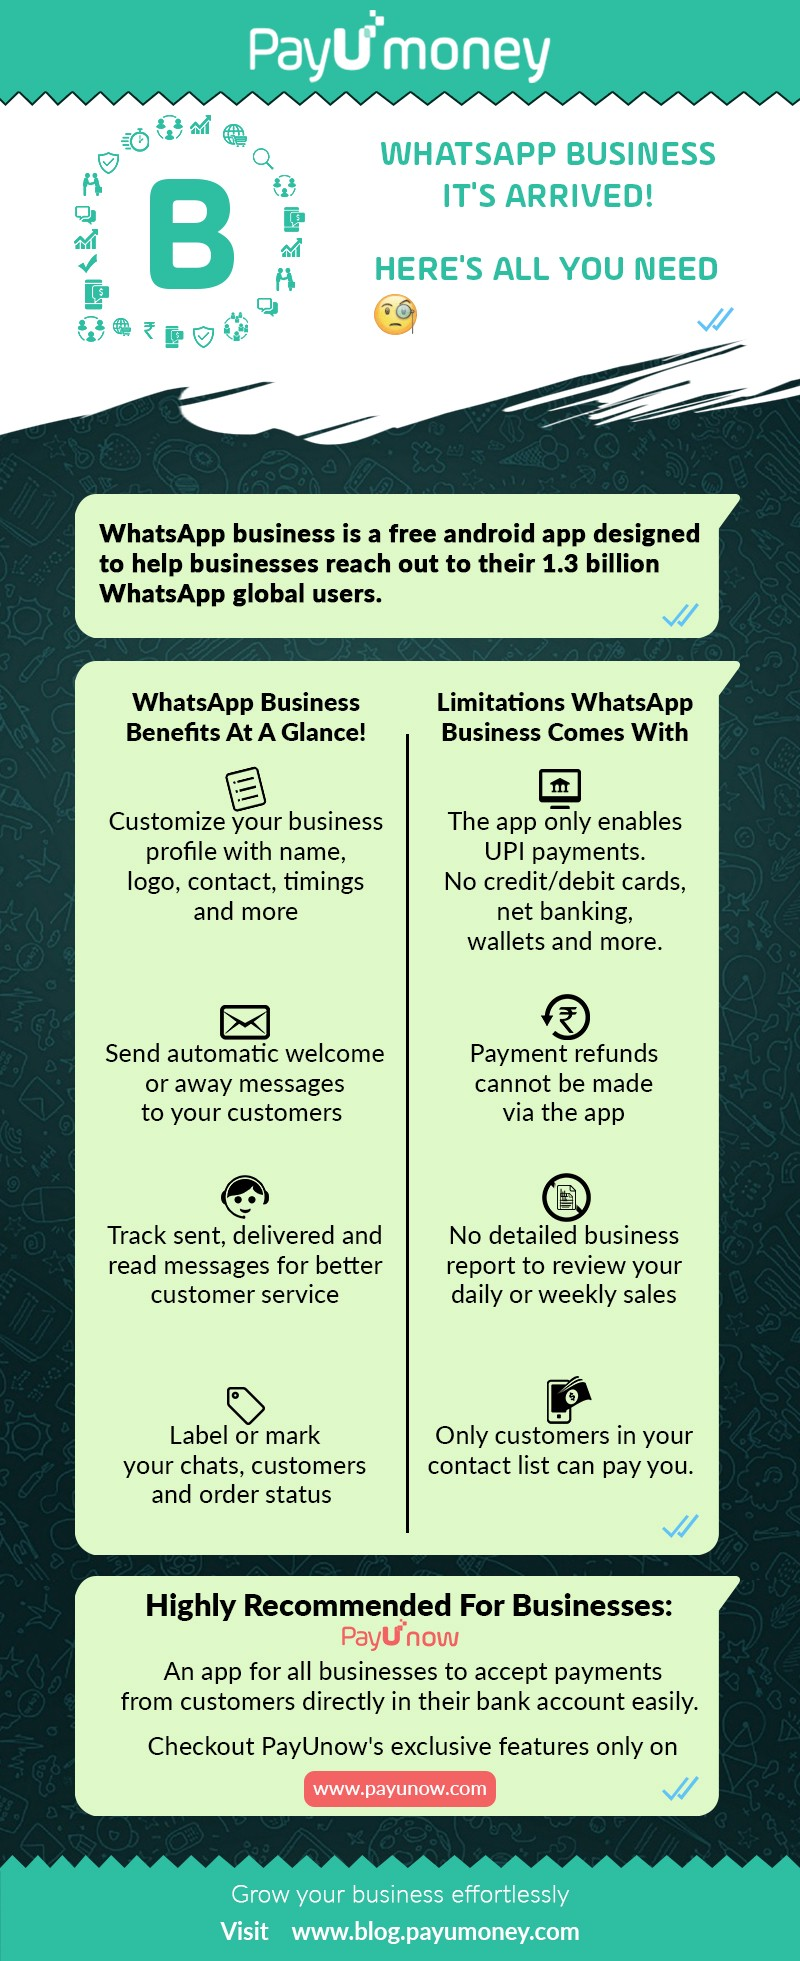 How To Use Whatsapp Business App To Sell Products